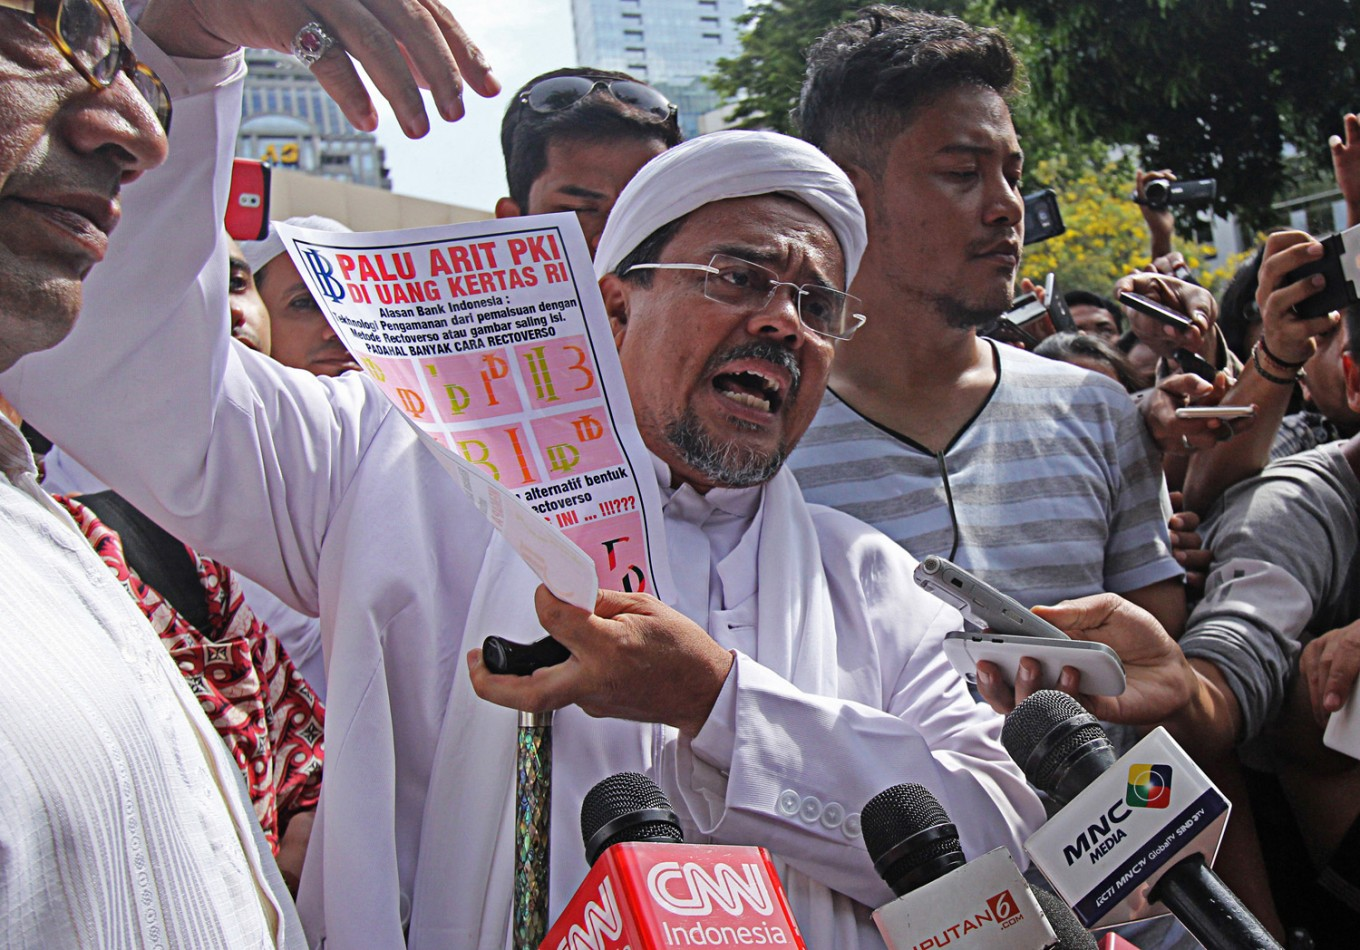 FPI leader calls for withdrawal of  banknotes with 'communist symbol'